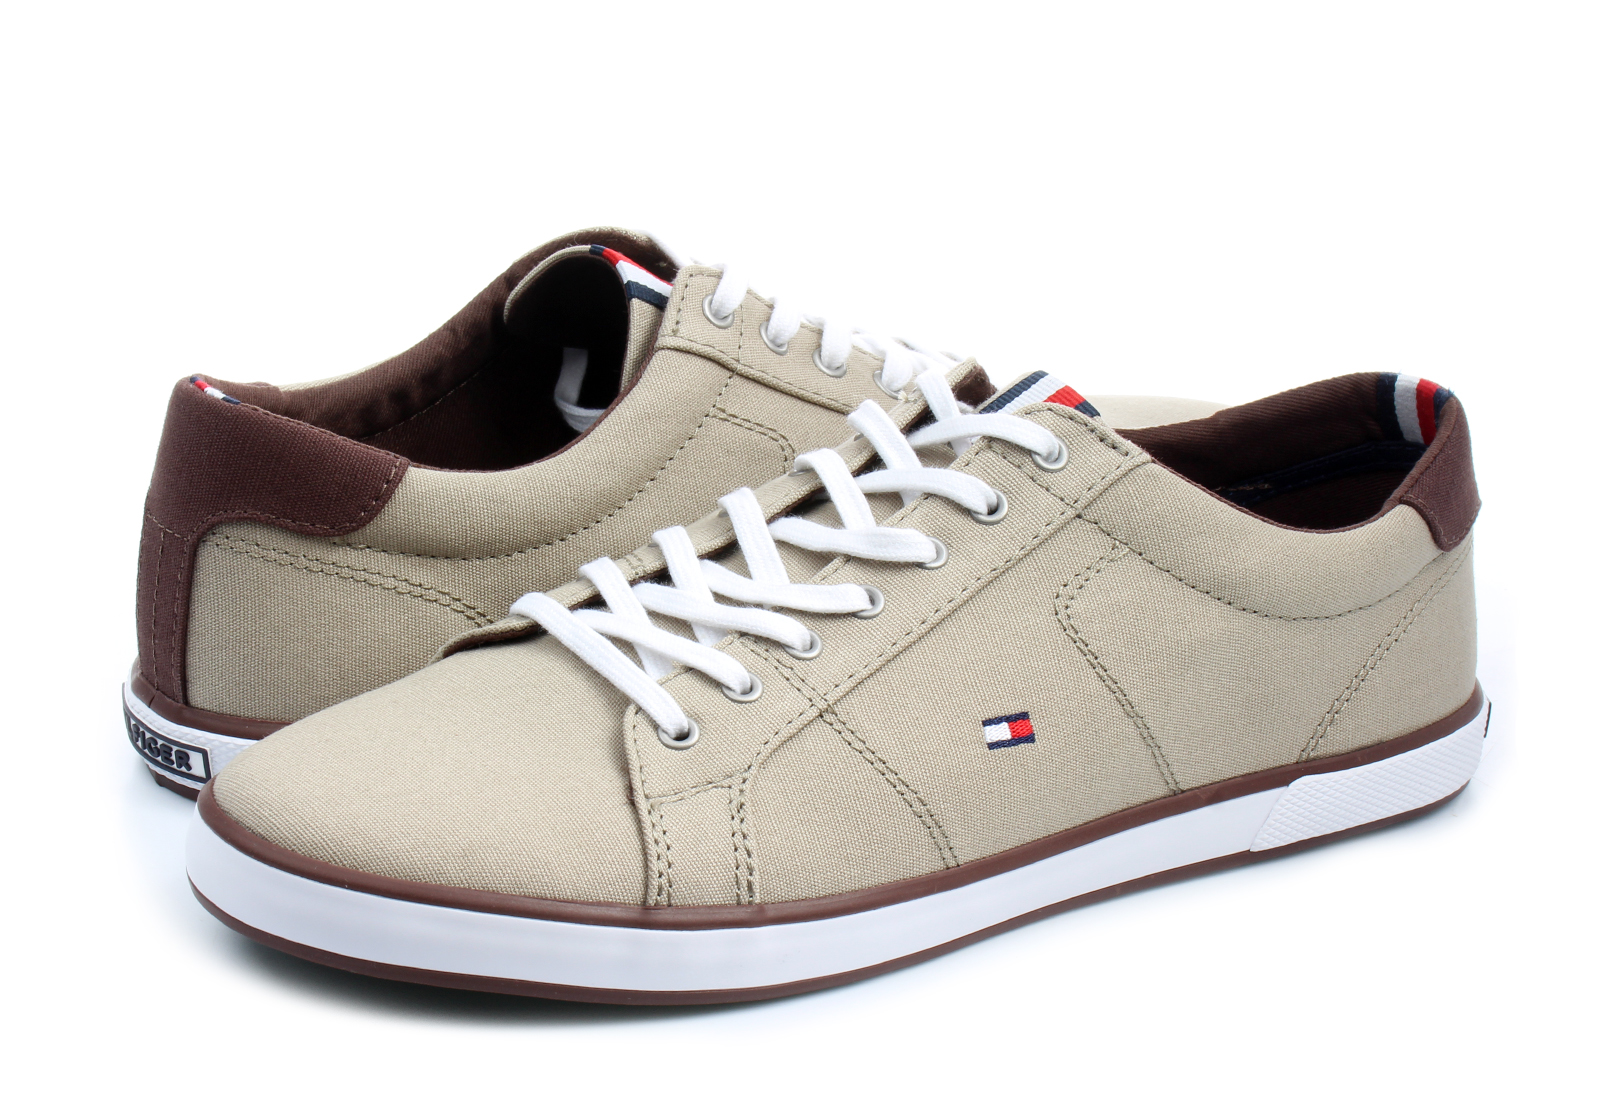 d428c81ad1 Tommy Hilfiger Cipő - Harlow 1 - 18S-1536-068 - Office Shoes ...